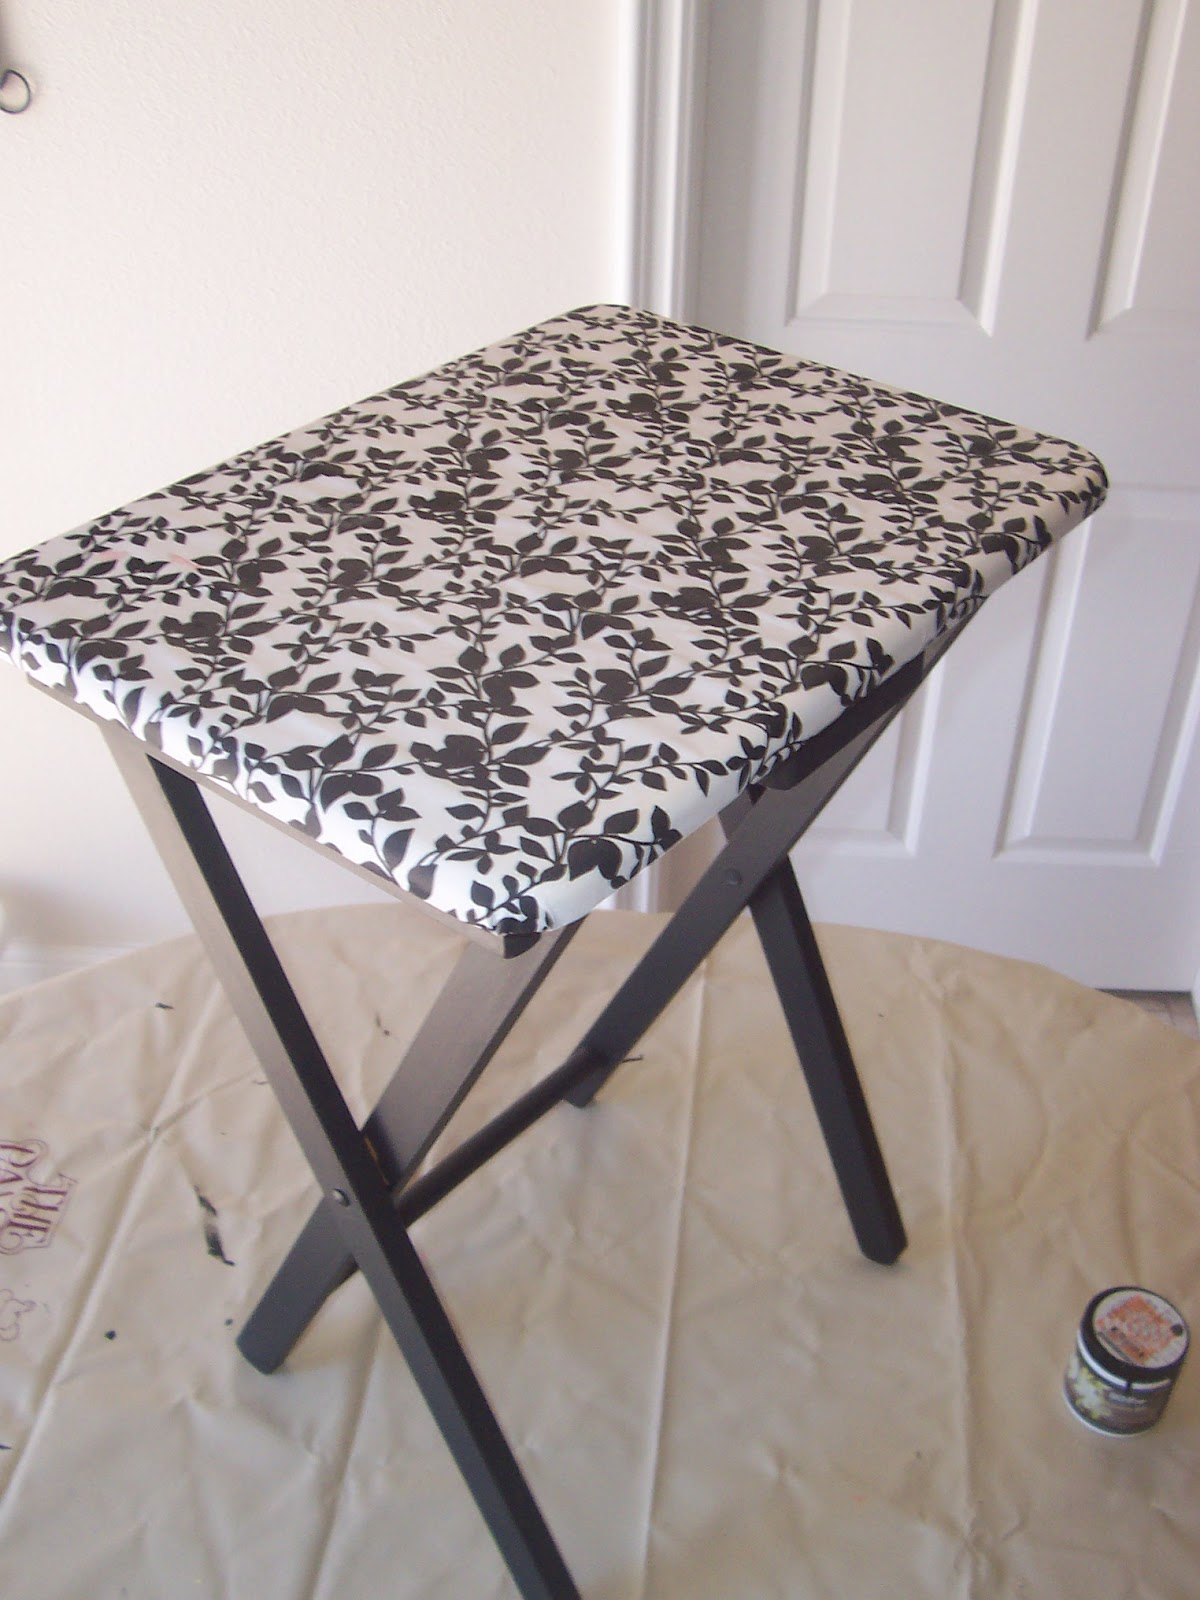 Caroline 39 s crafty corner my pretty side table for Pretty html table